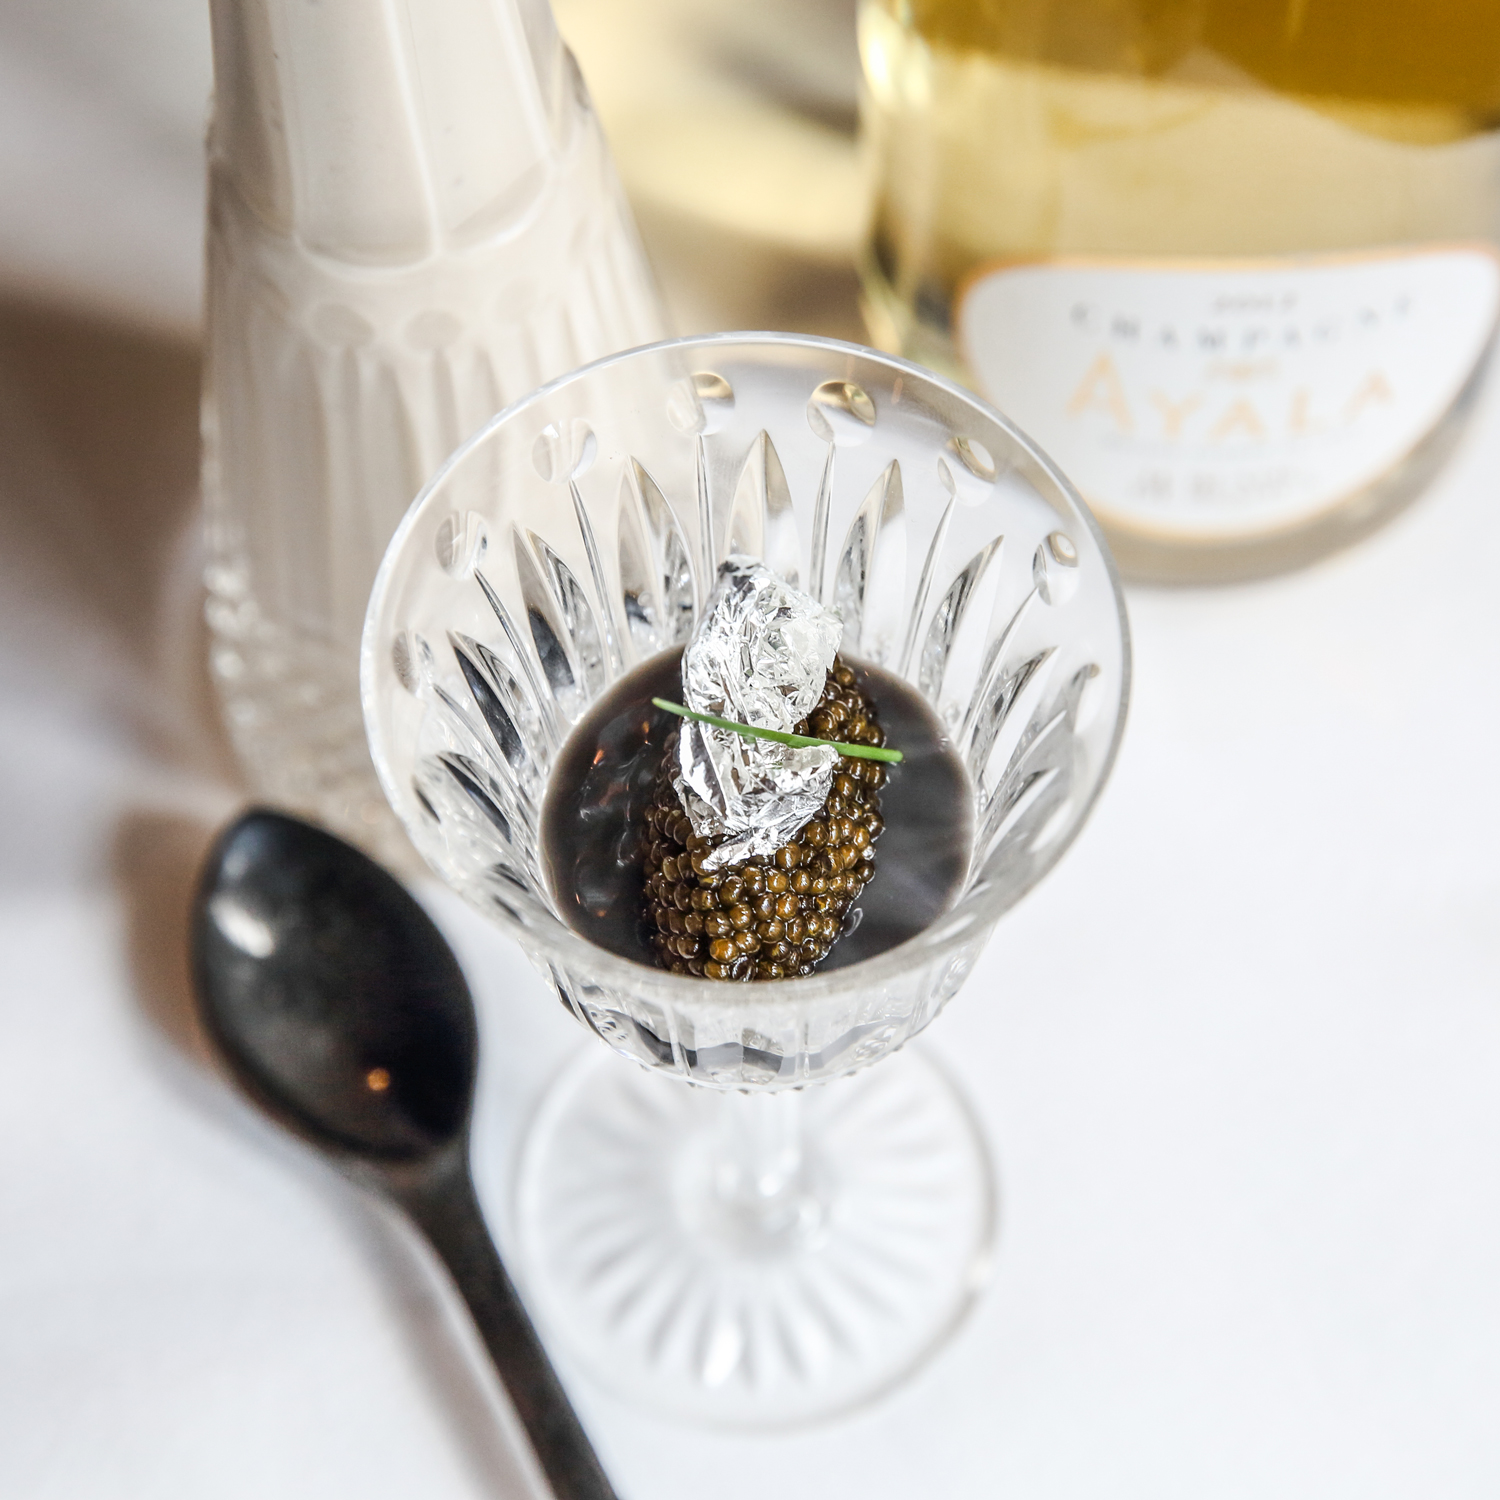 Helene Darroze chef in restaurant with caviar dish and wine